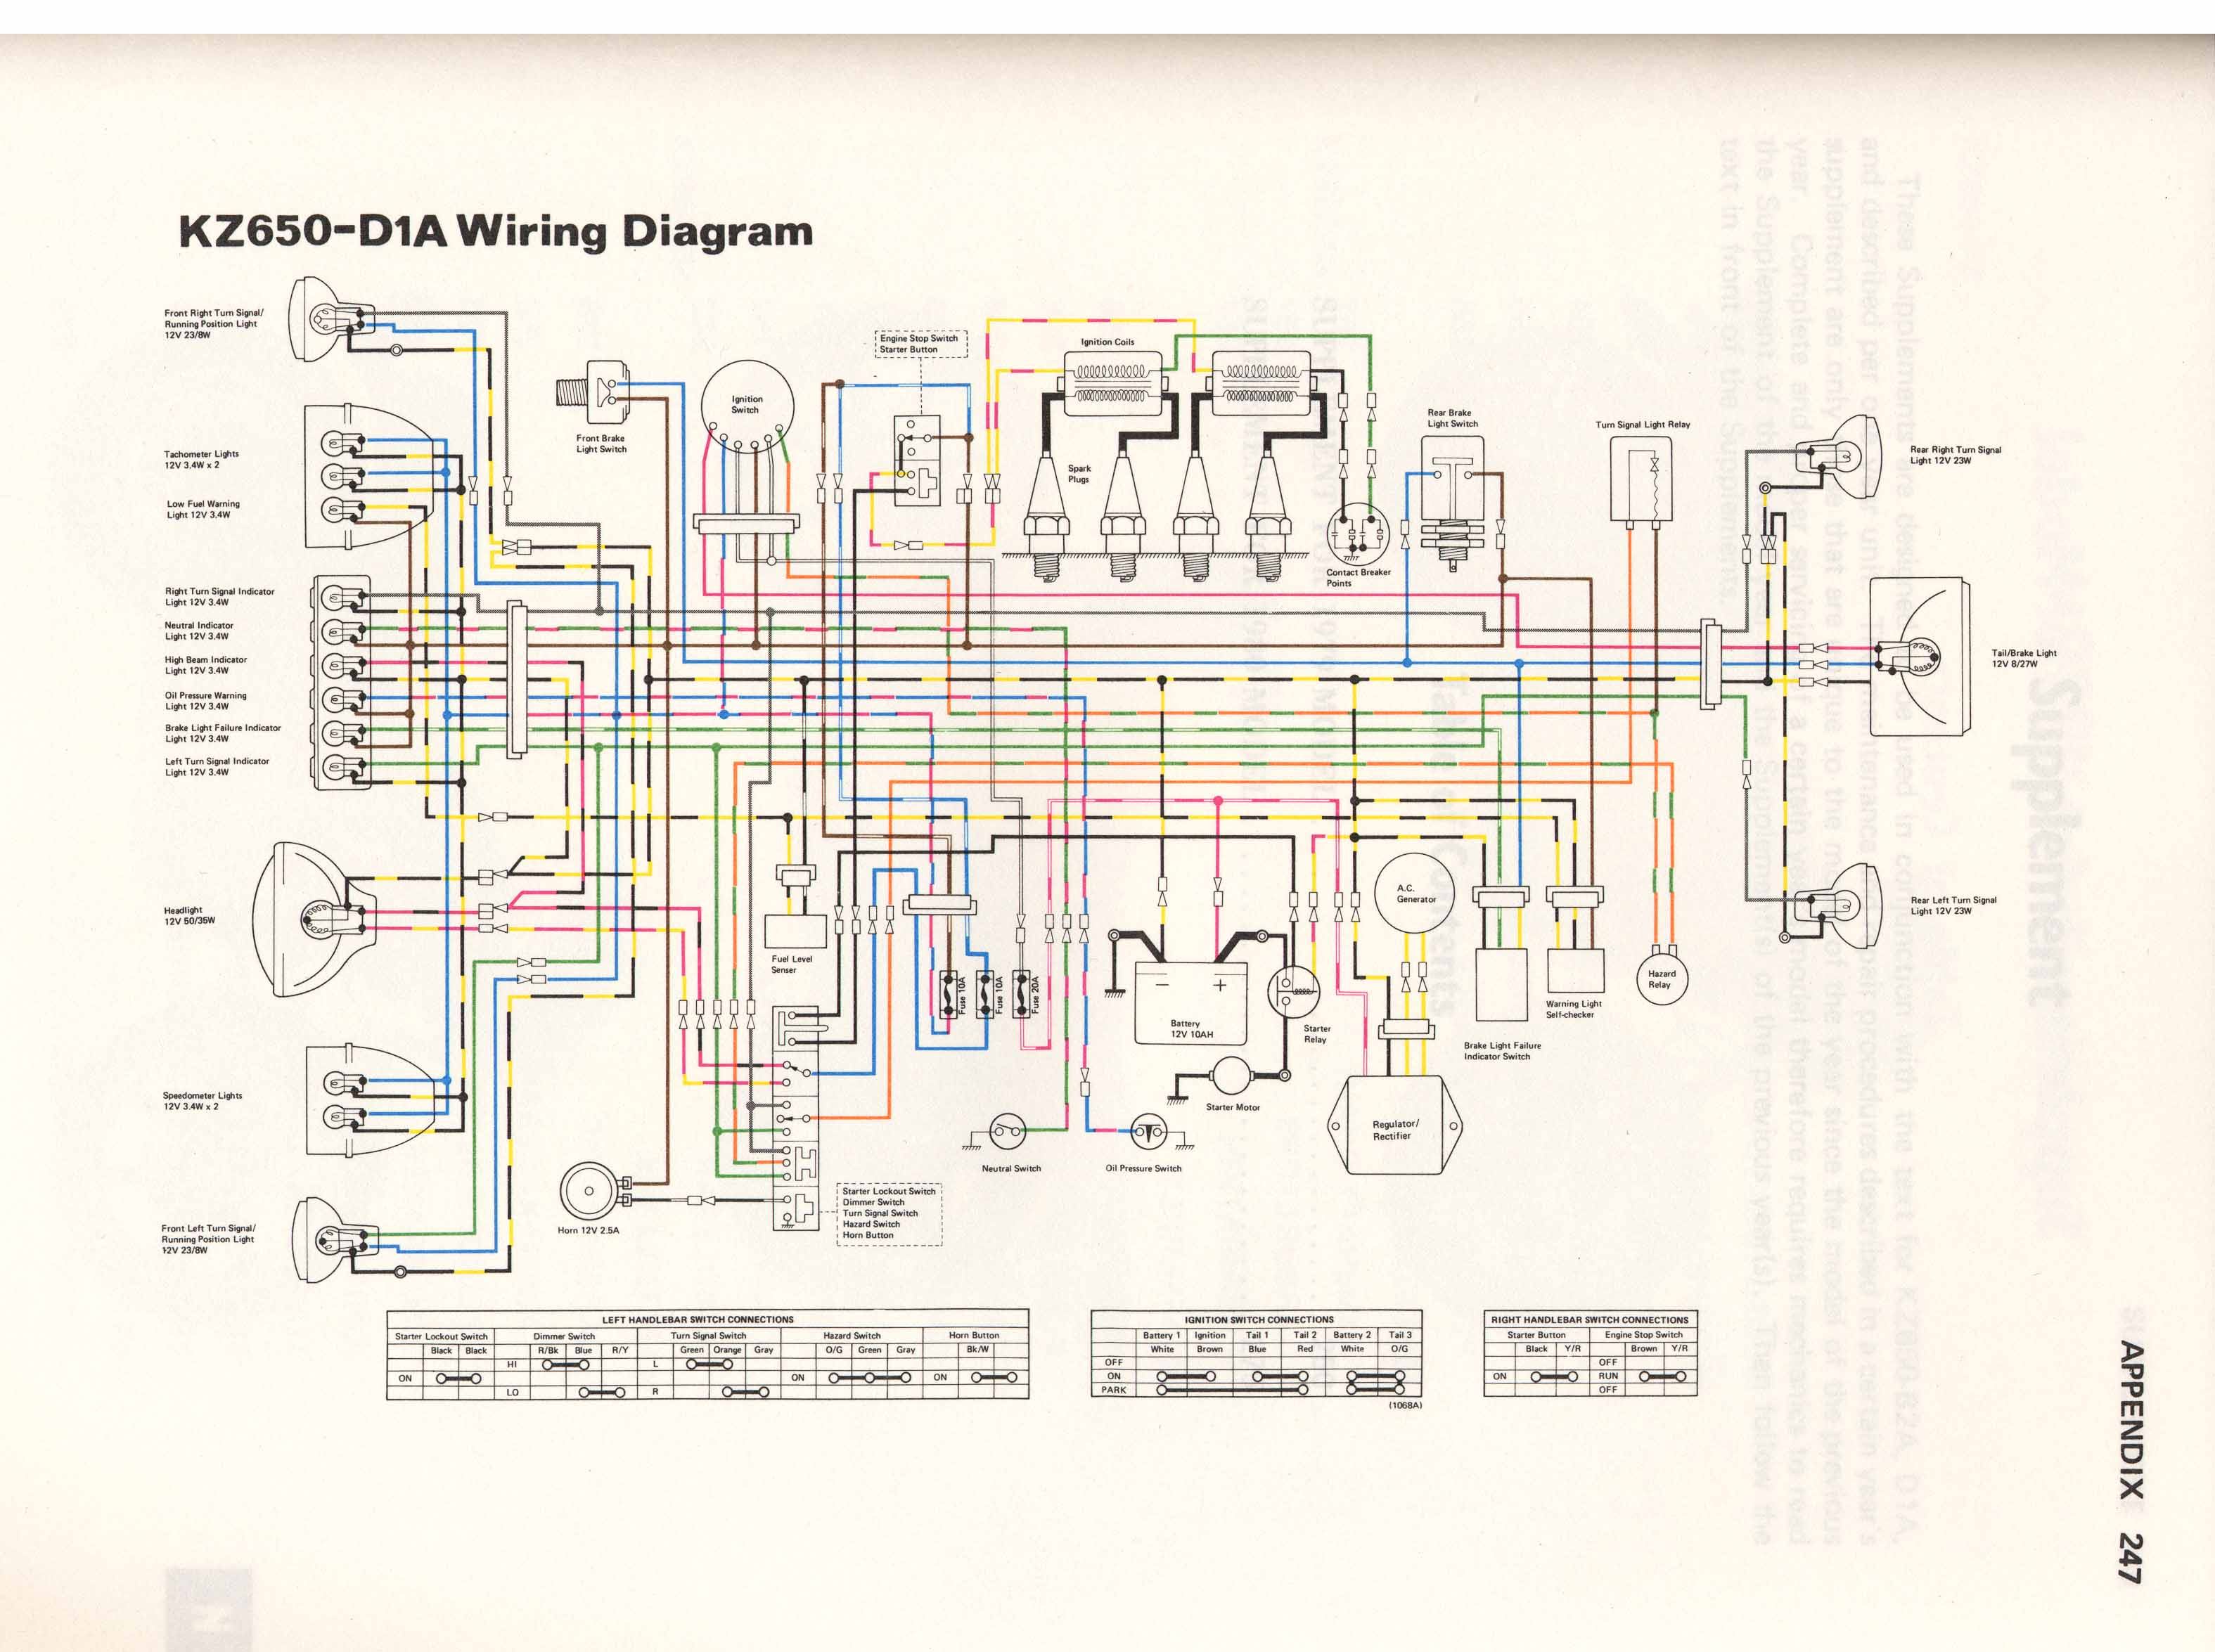 KZ650 D1A kawasaki kz650 wiring diagram vulcan 1500 wiring diagram \u2022 free 1981 kawasaki 440 ltd wiring diagram at bayanpartner.co